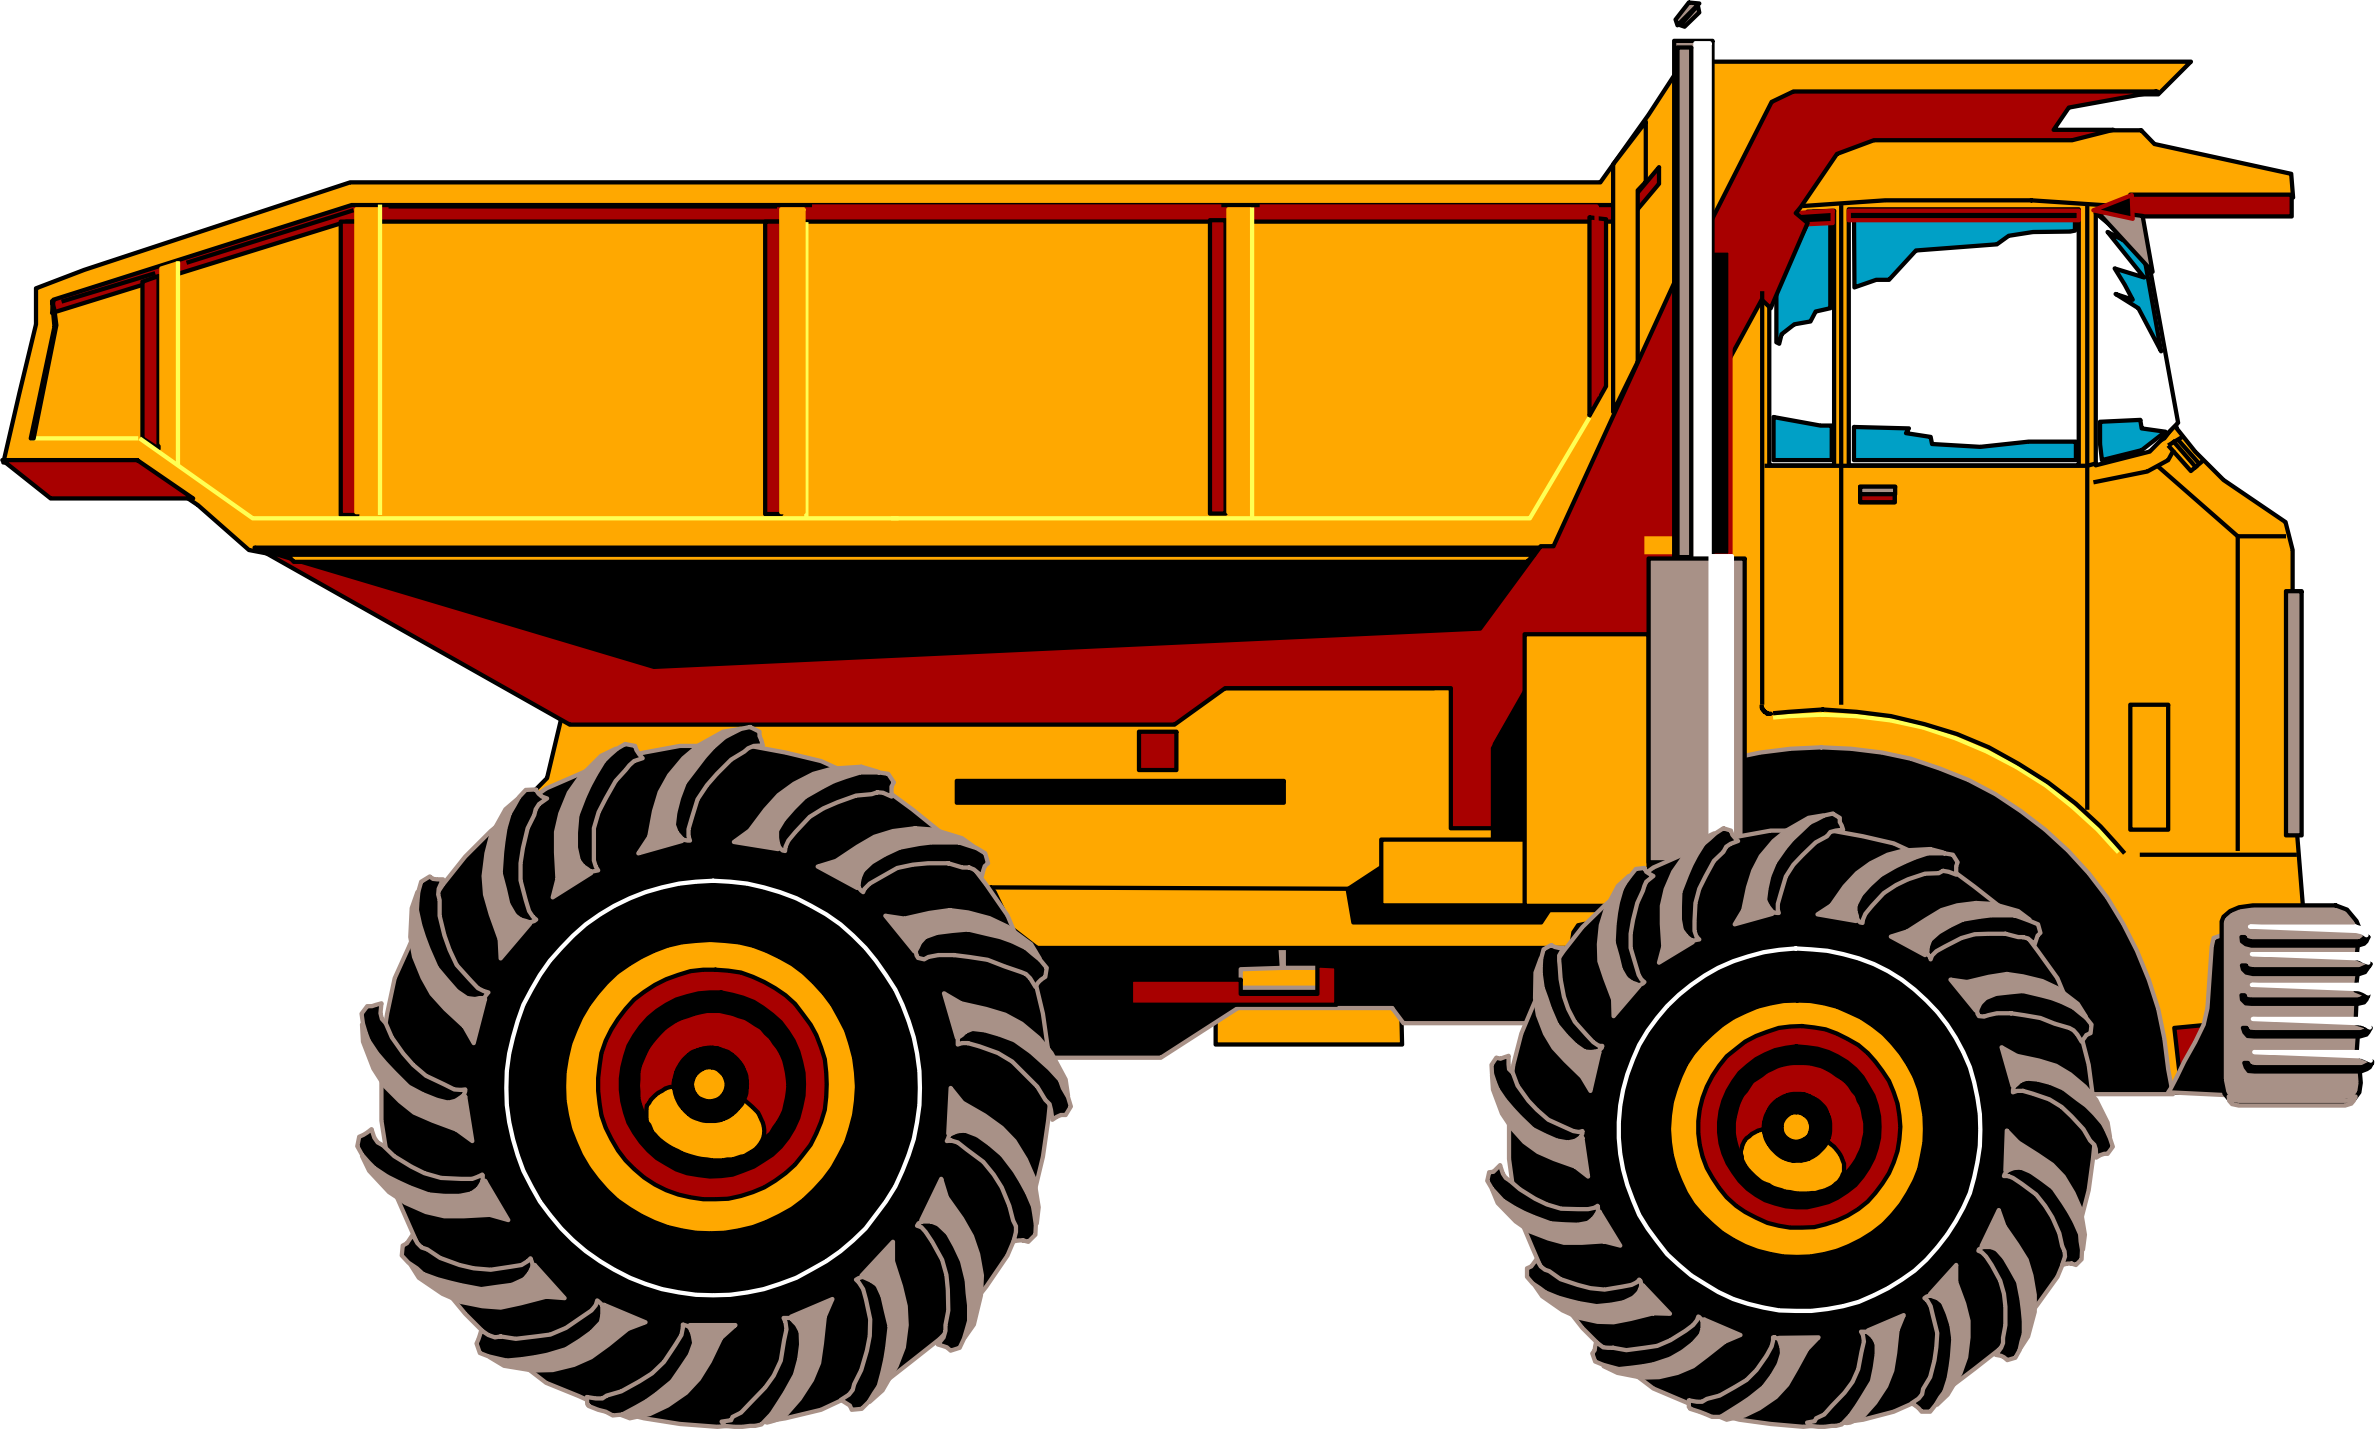 png black and white stock Torex dump big image. Construction truck clipart.